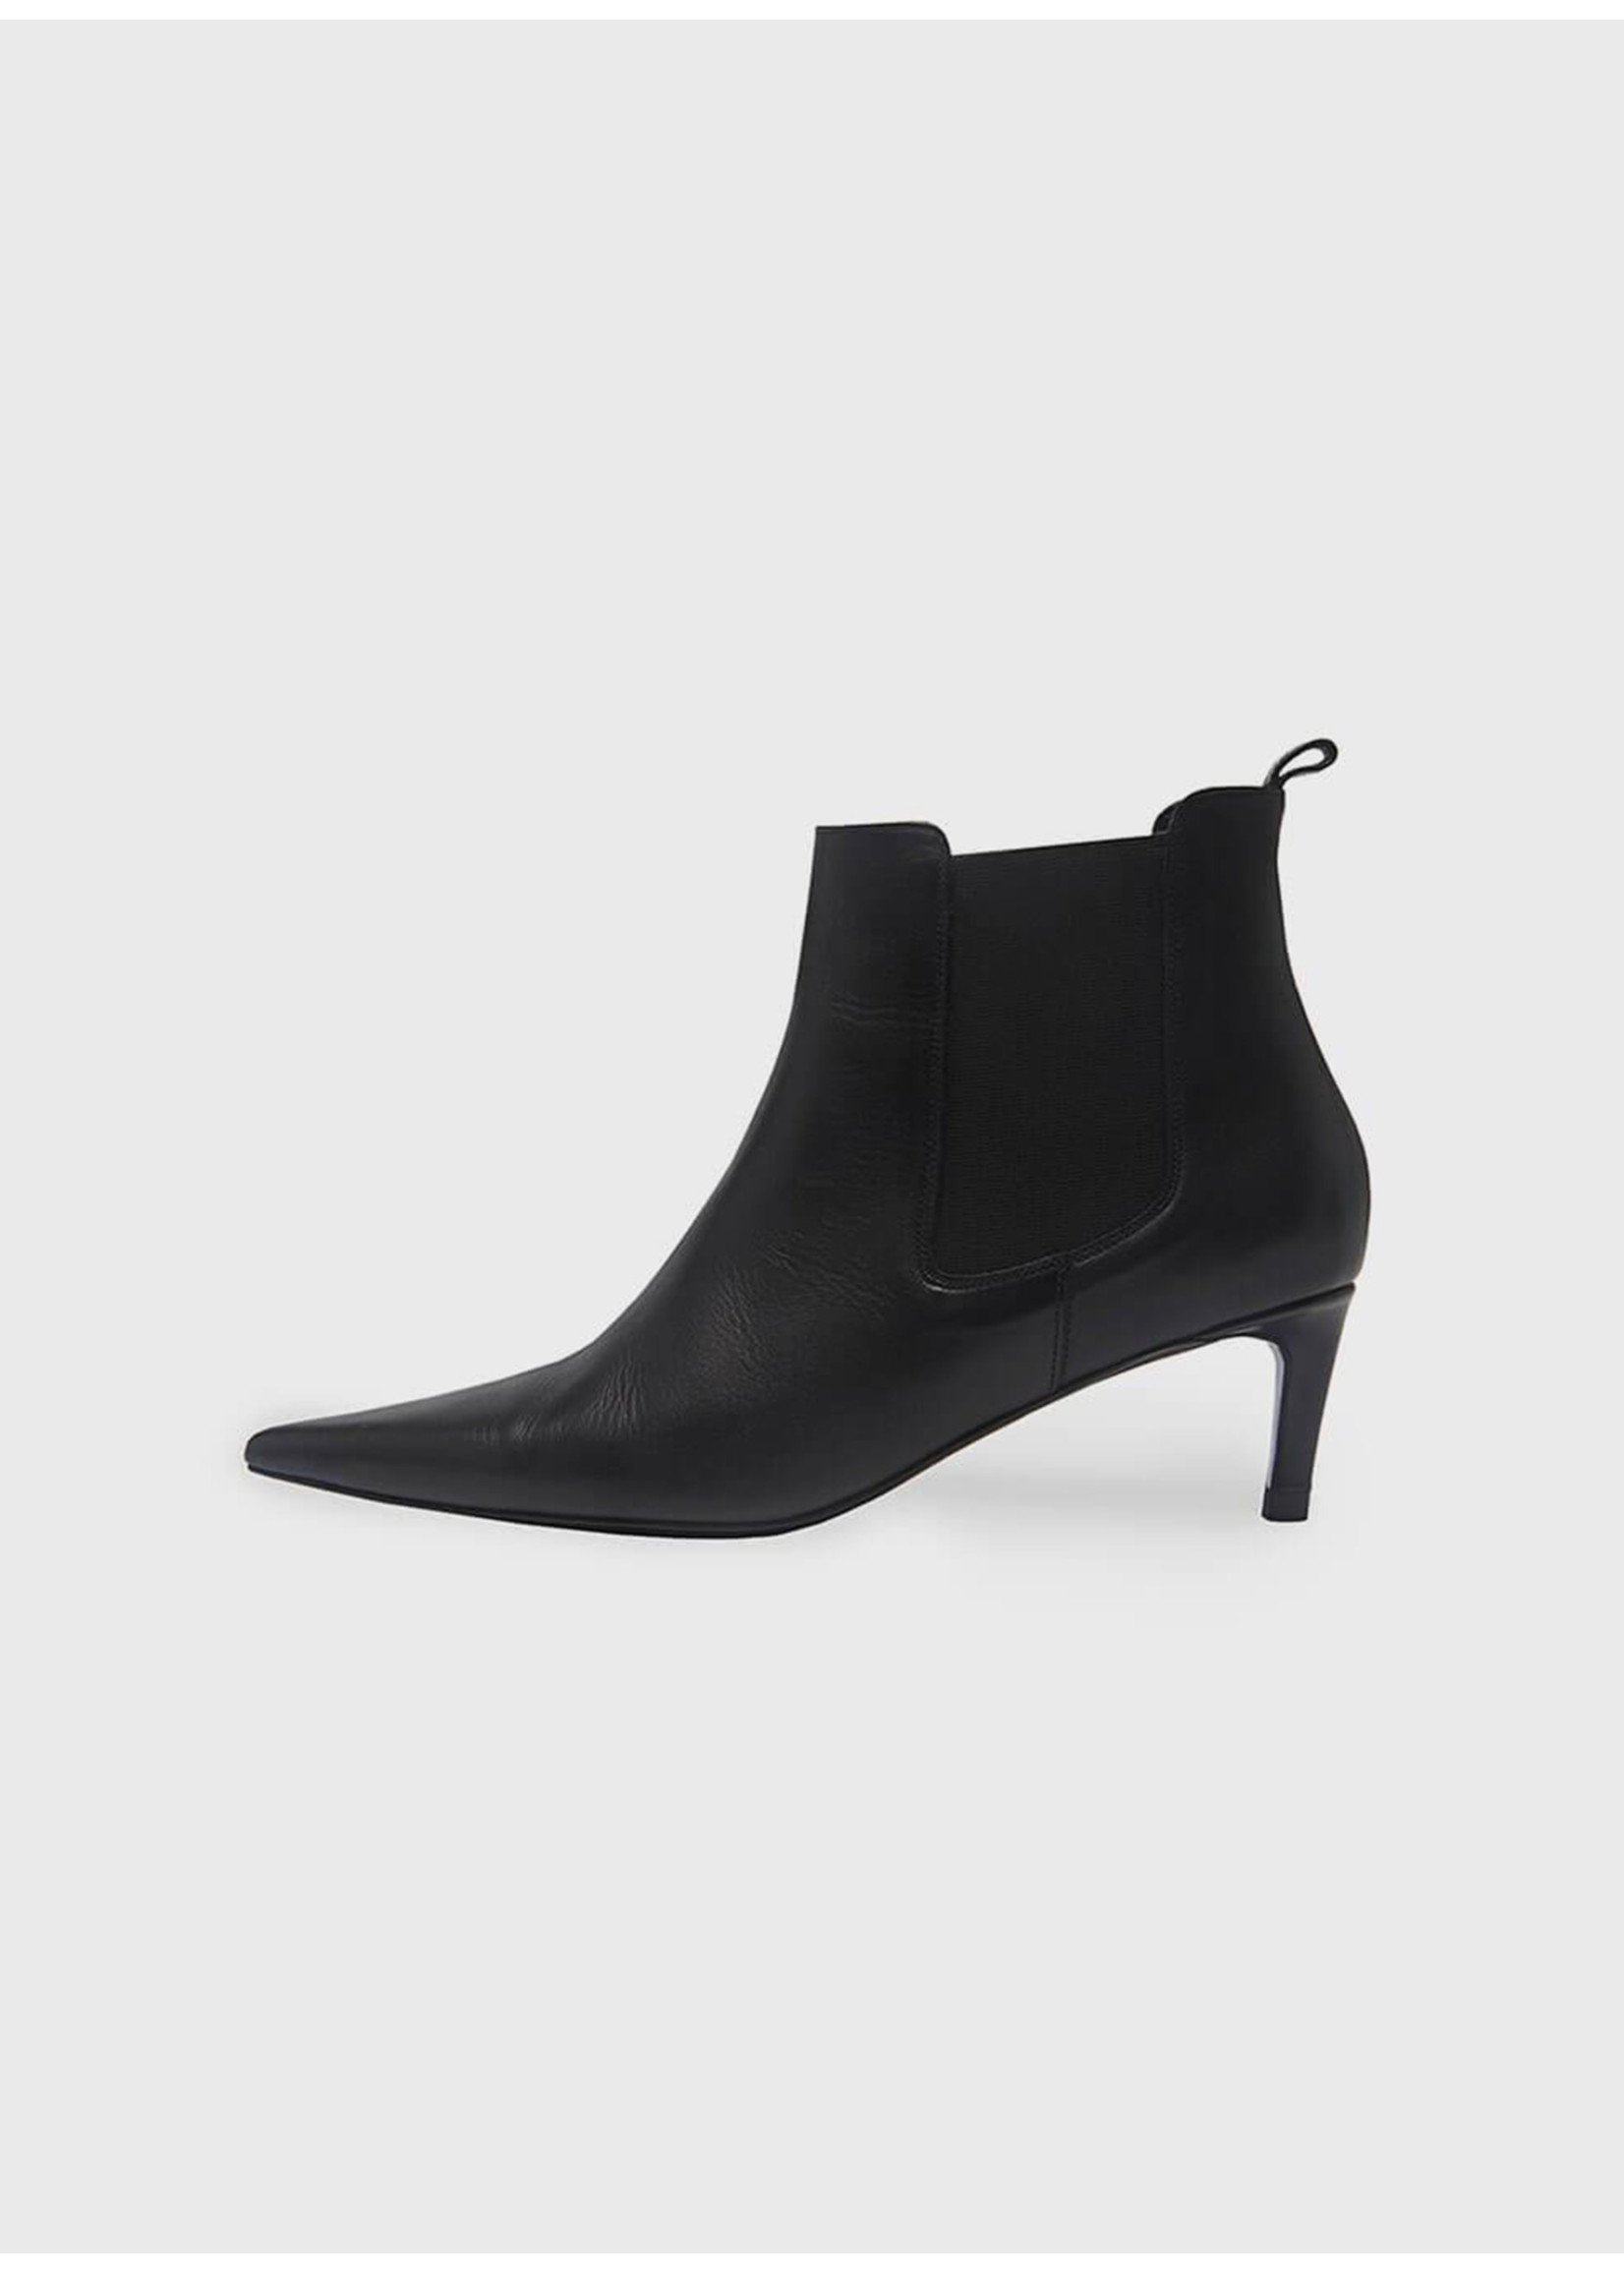 Anine Bing Stevie Boots Black Leather